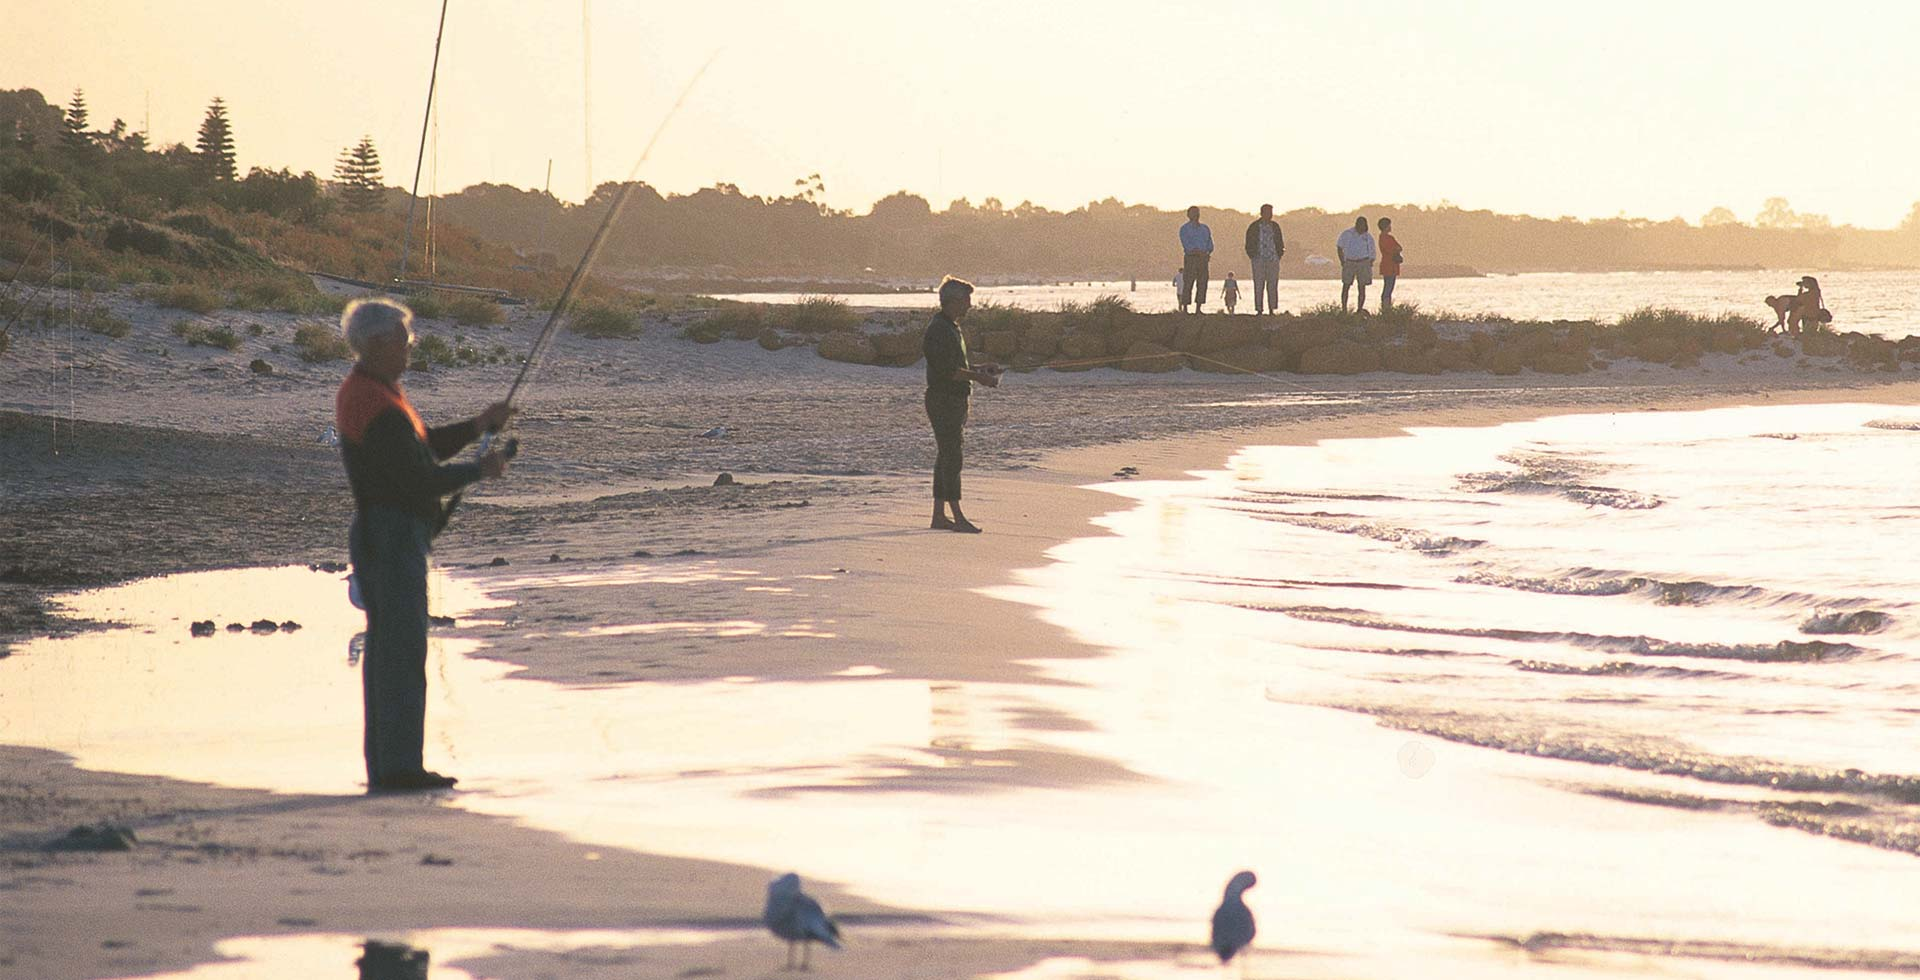 Discover this stunning coastline and views at Geographe Bay